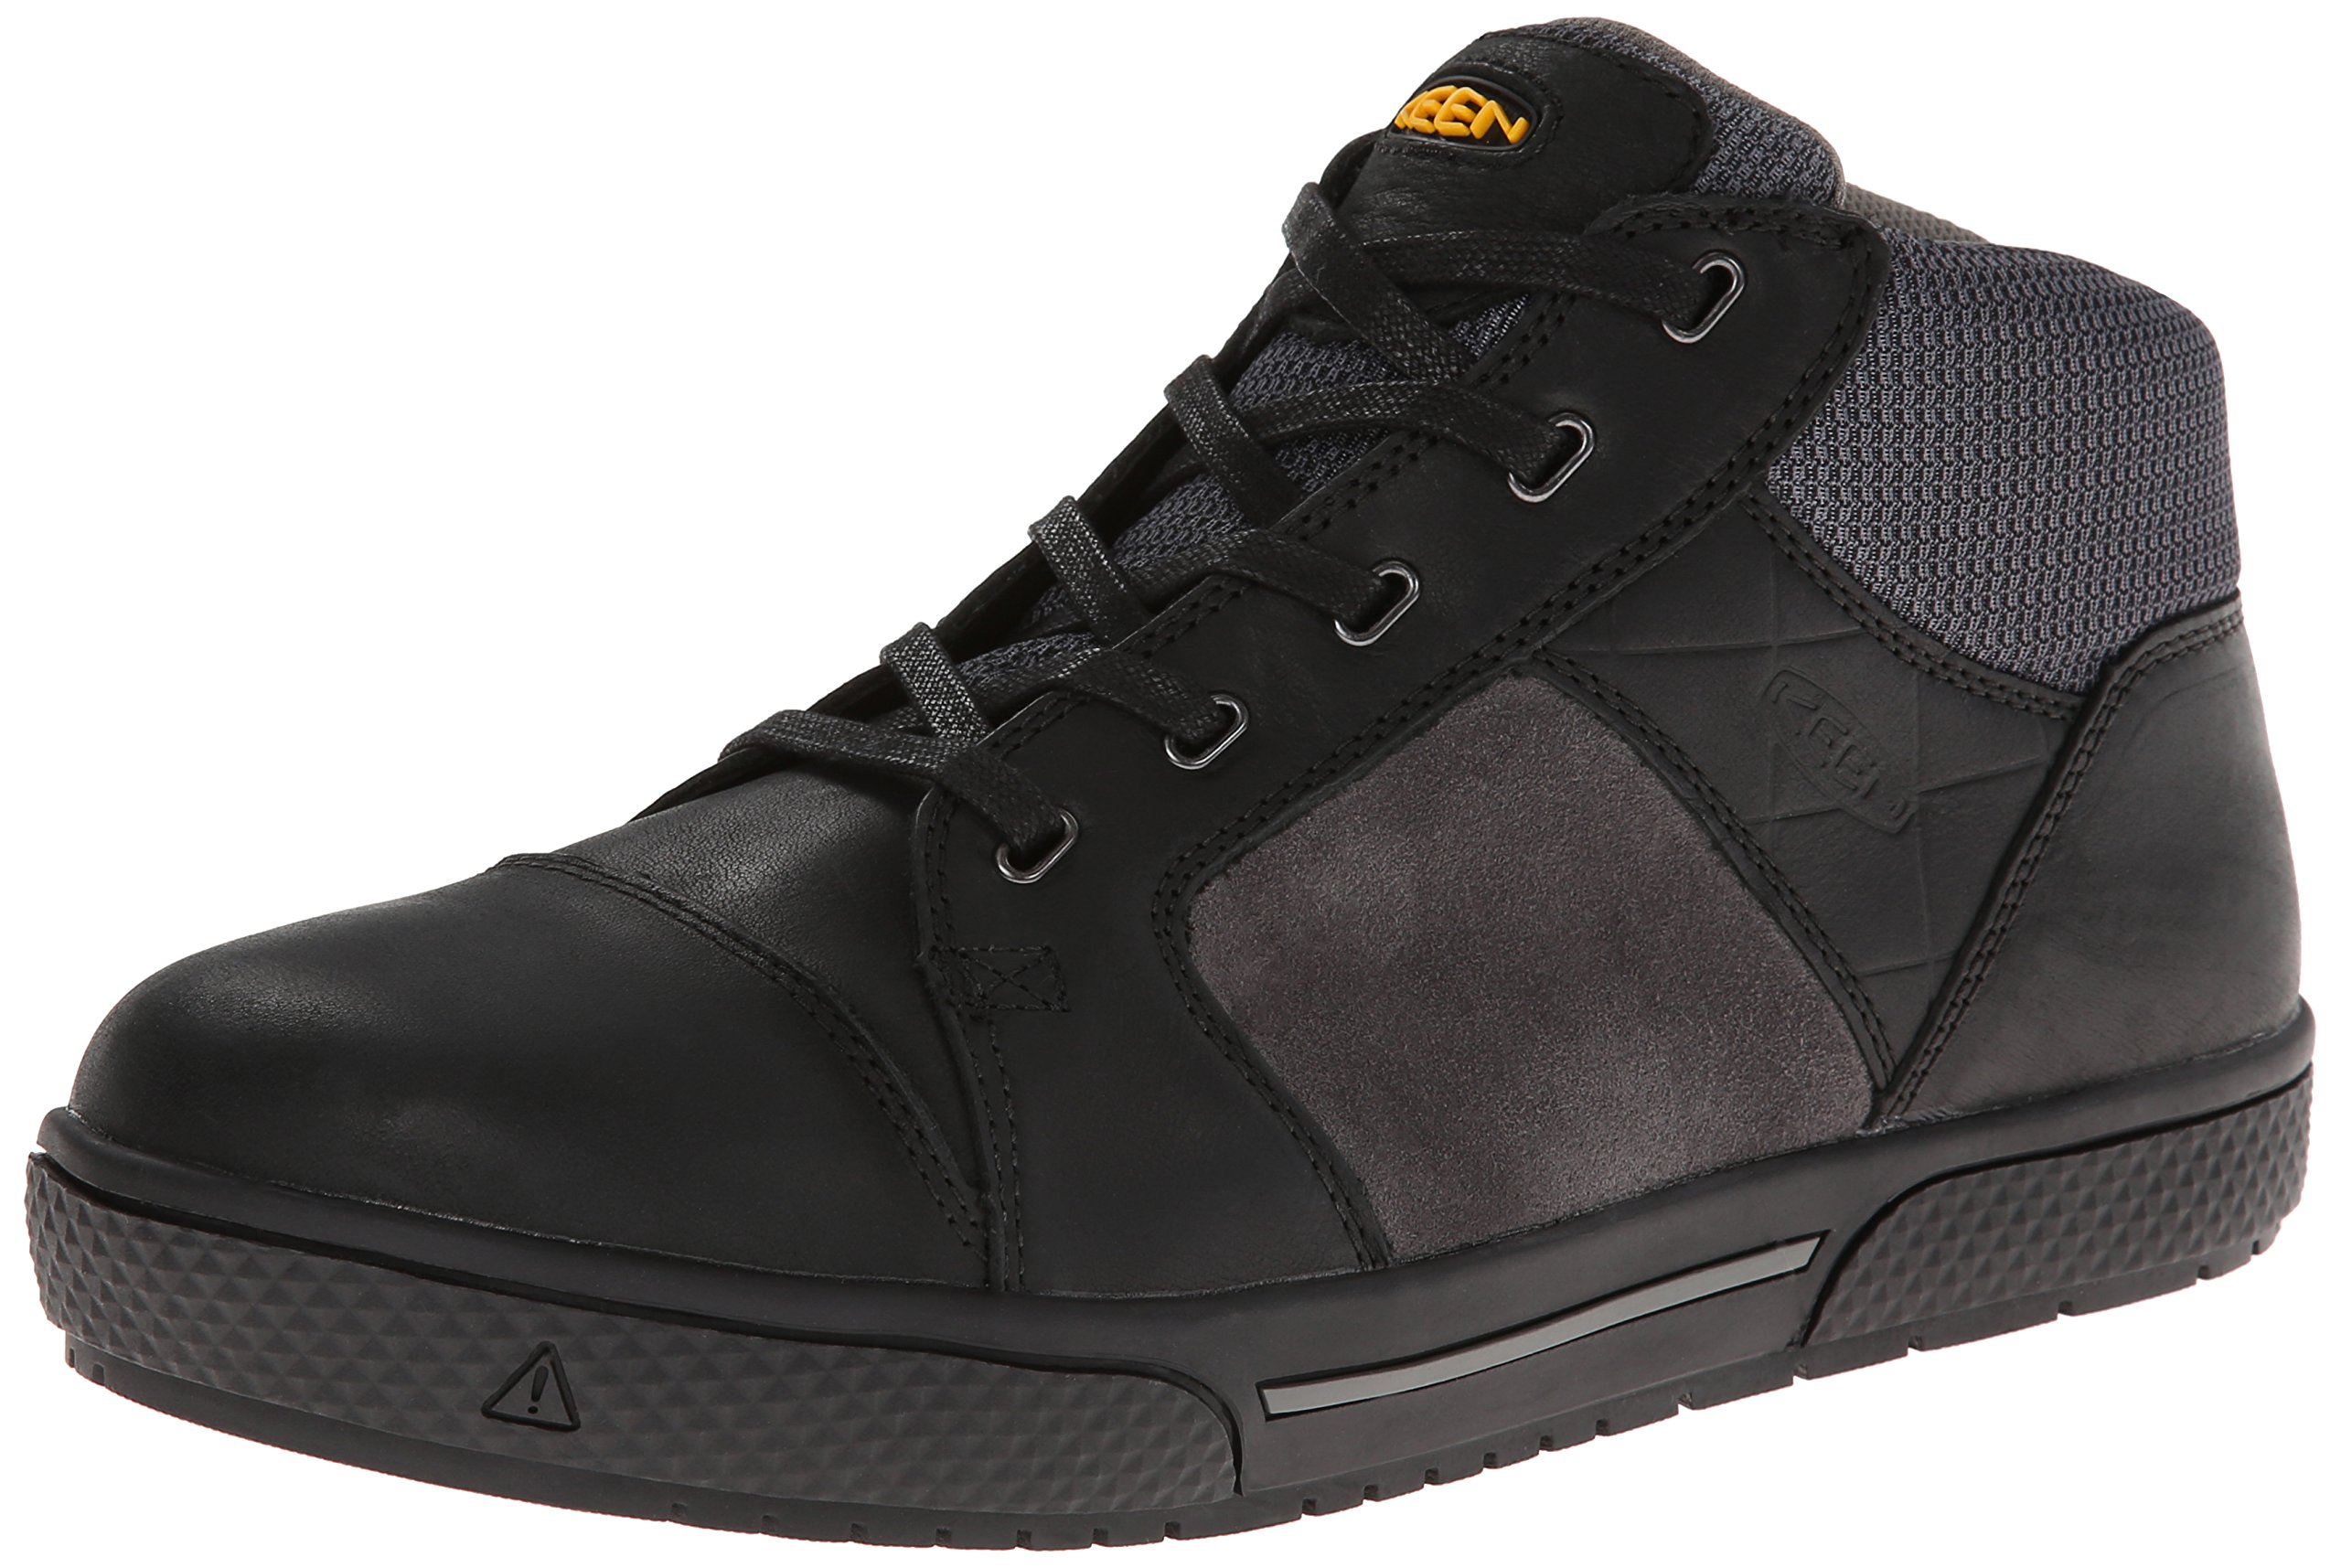 KEEN Utility Men's Destin Mid Steel Toe Shoe,Black/Gargoyle,12 EE US